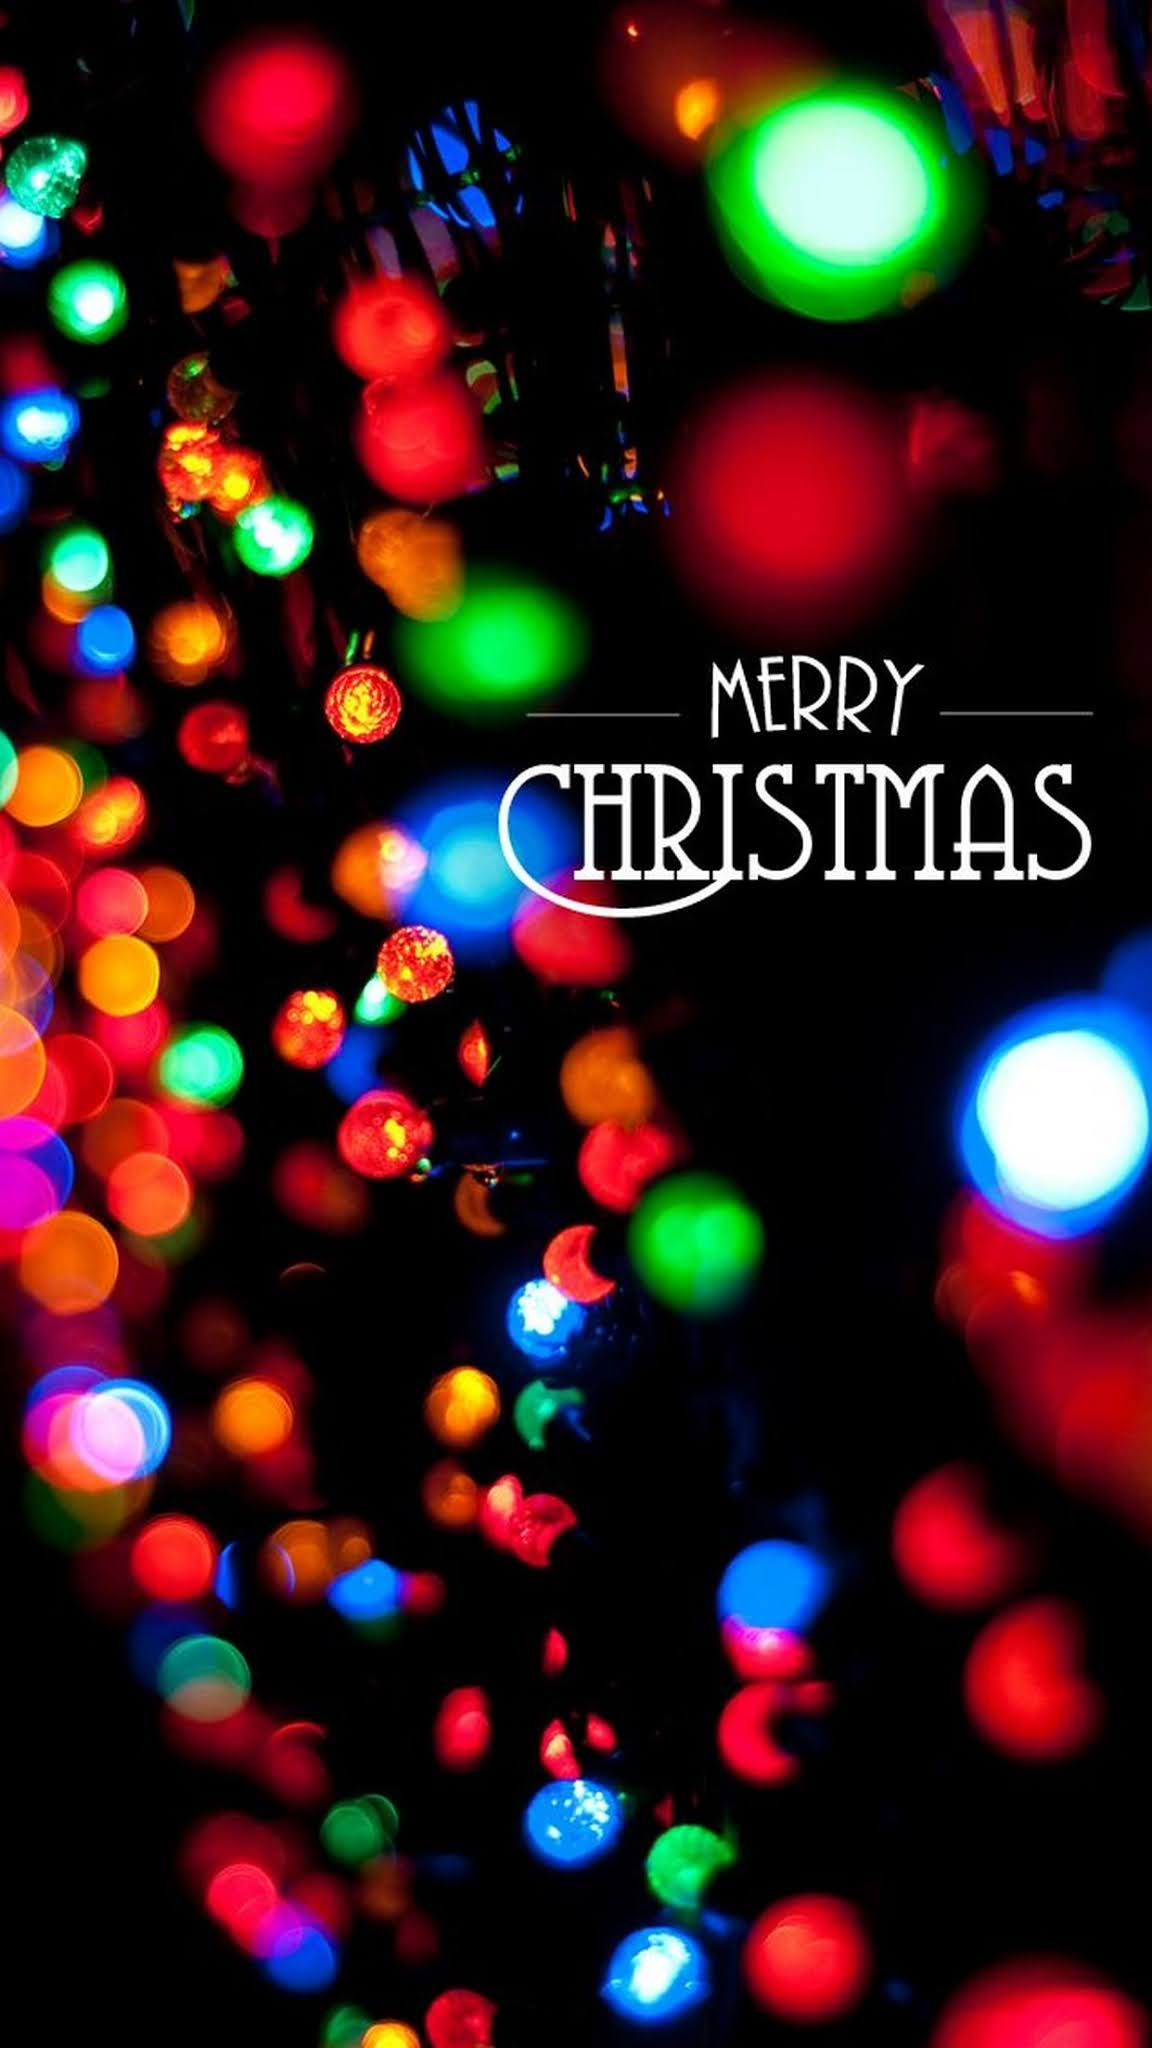 Colorful Merry Christmas HD Wallpaper for iPhone